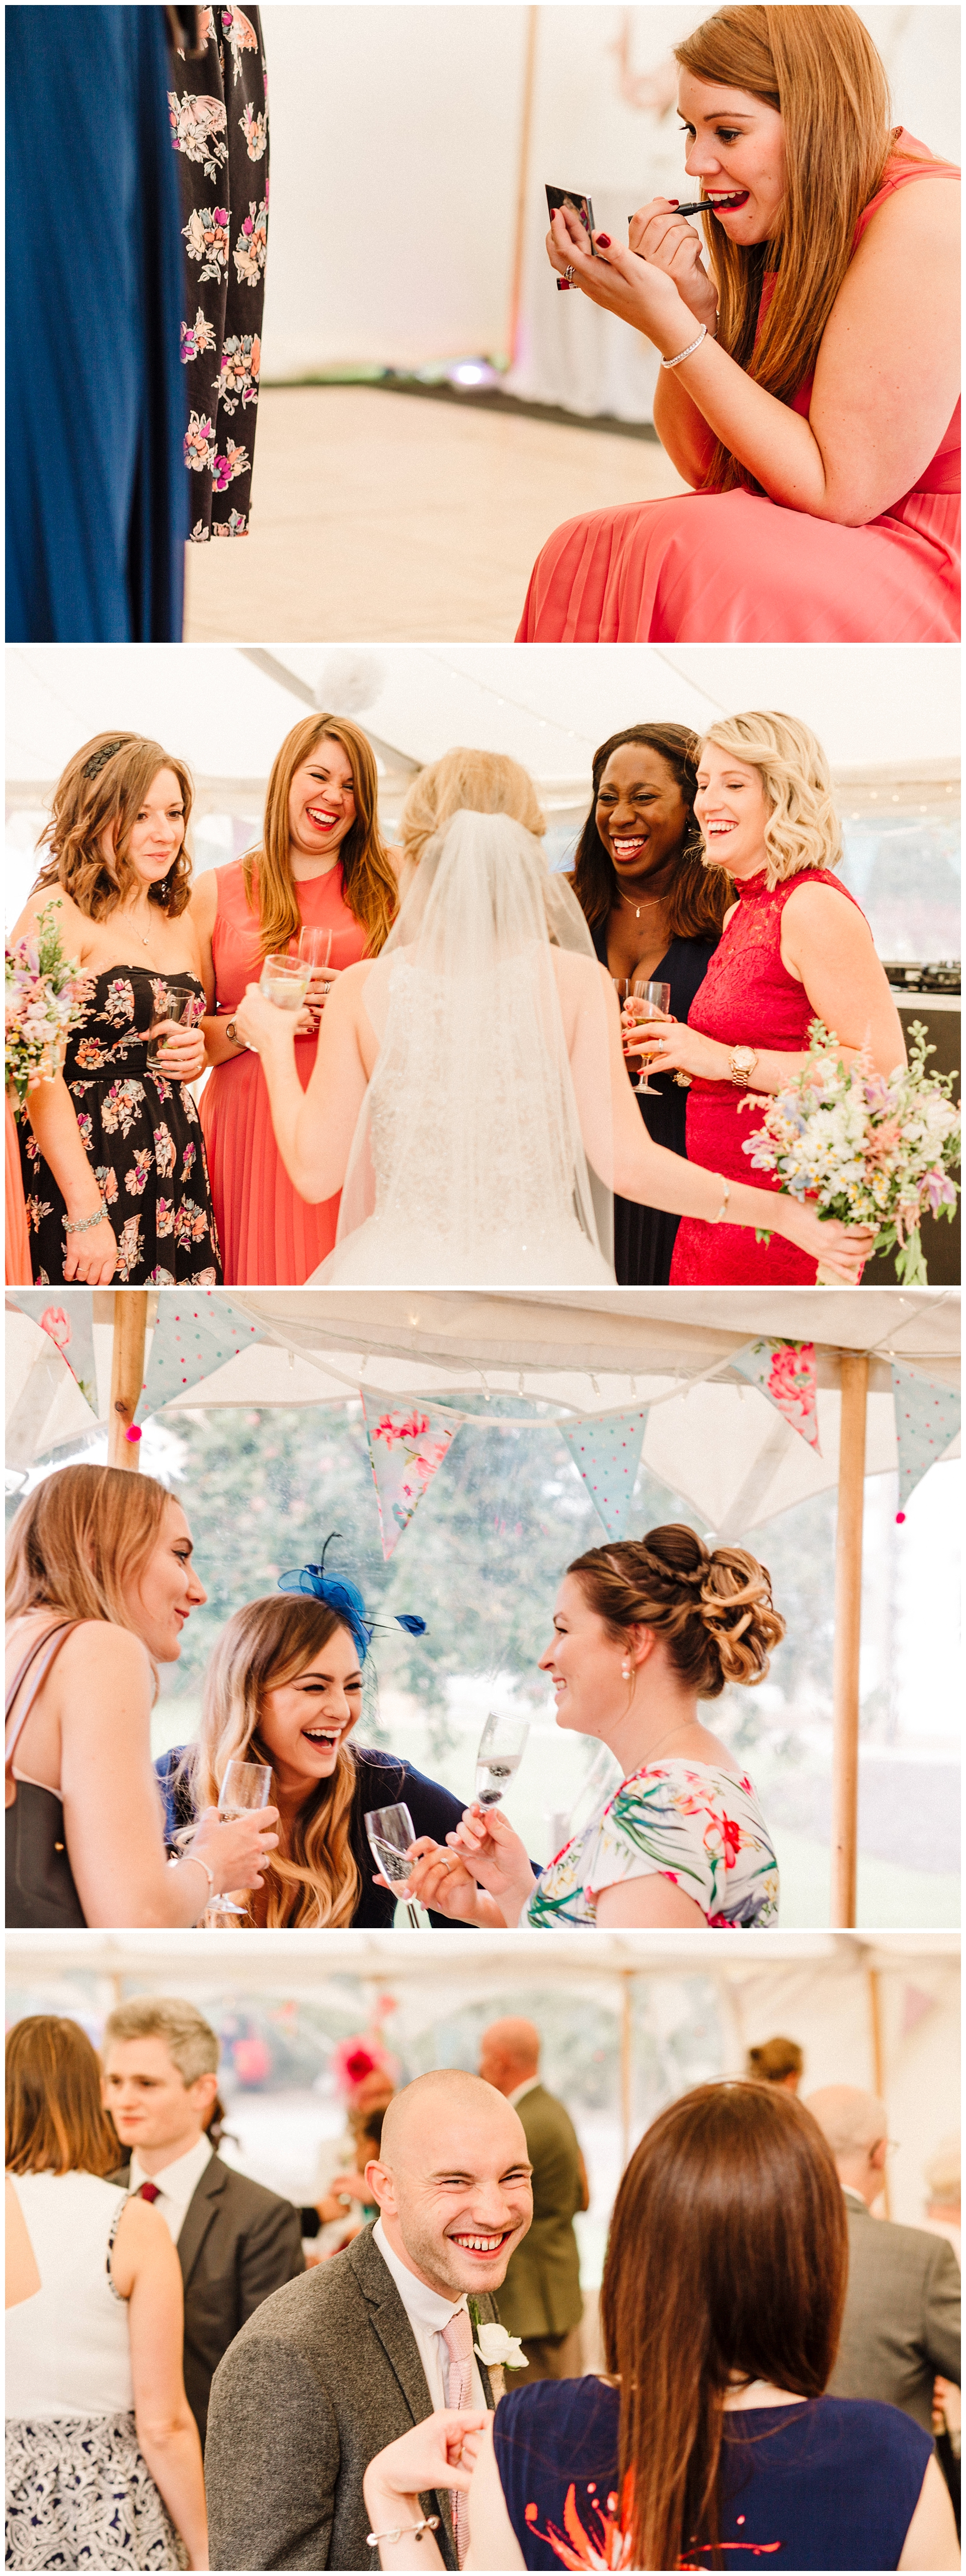 guests talking and laughing at a wedding reception.jpg